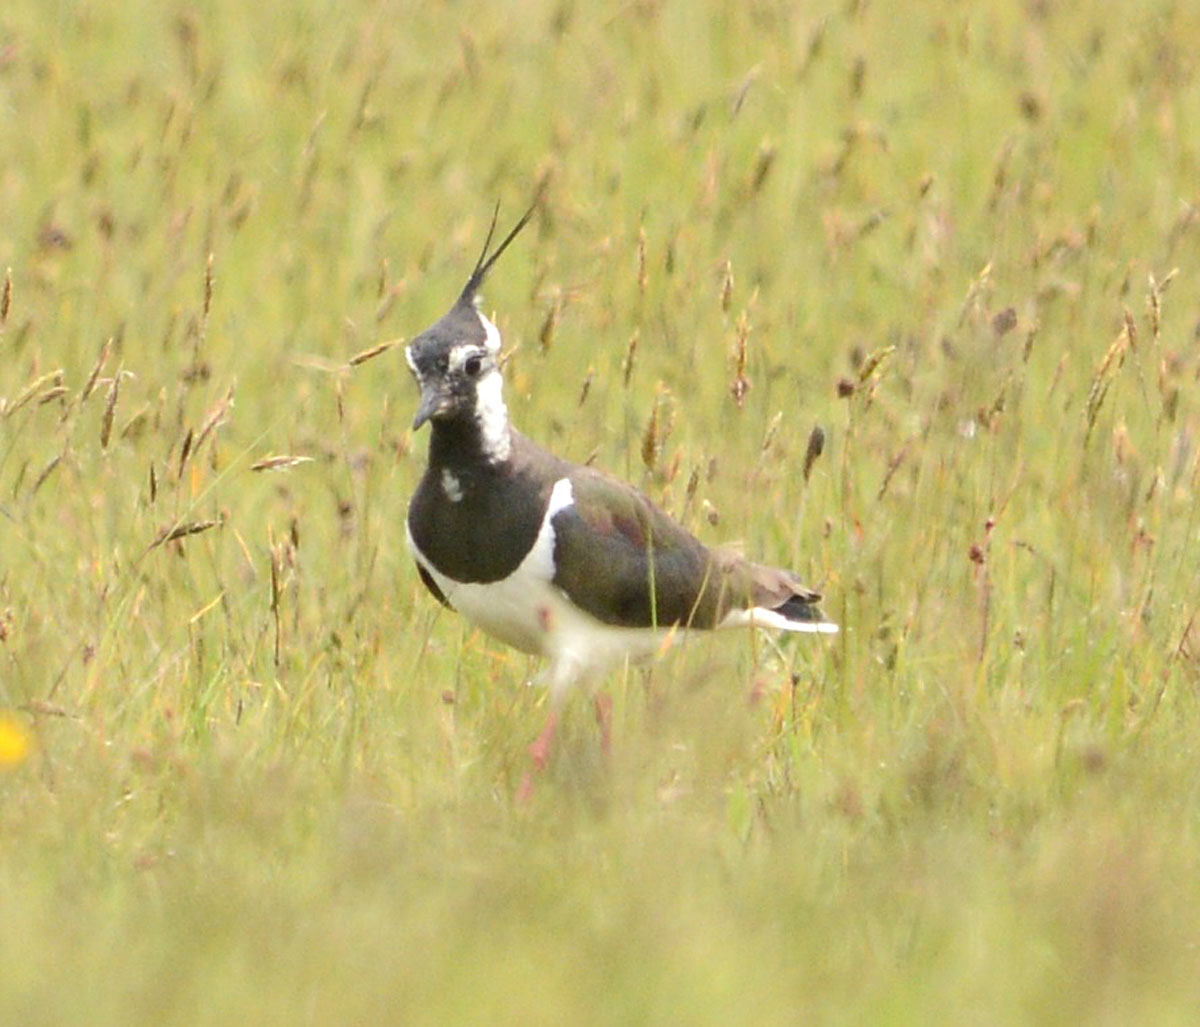 Lapwing, or teeo/teeack in Orcadian dialect.